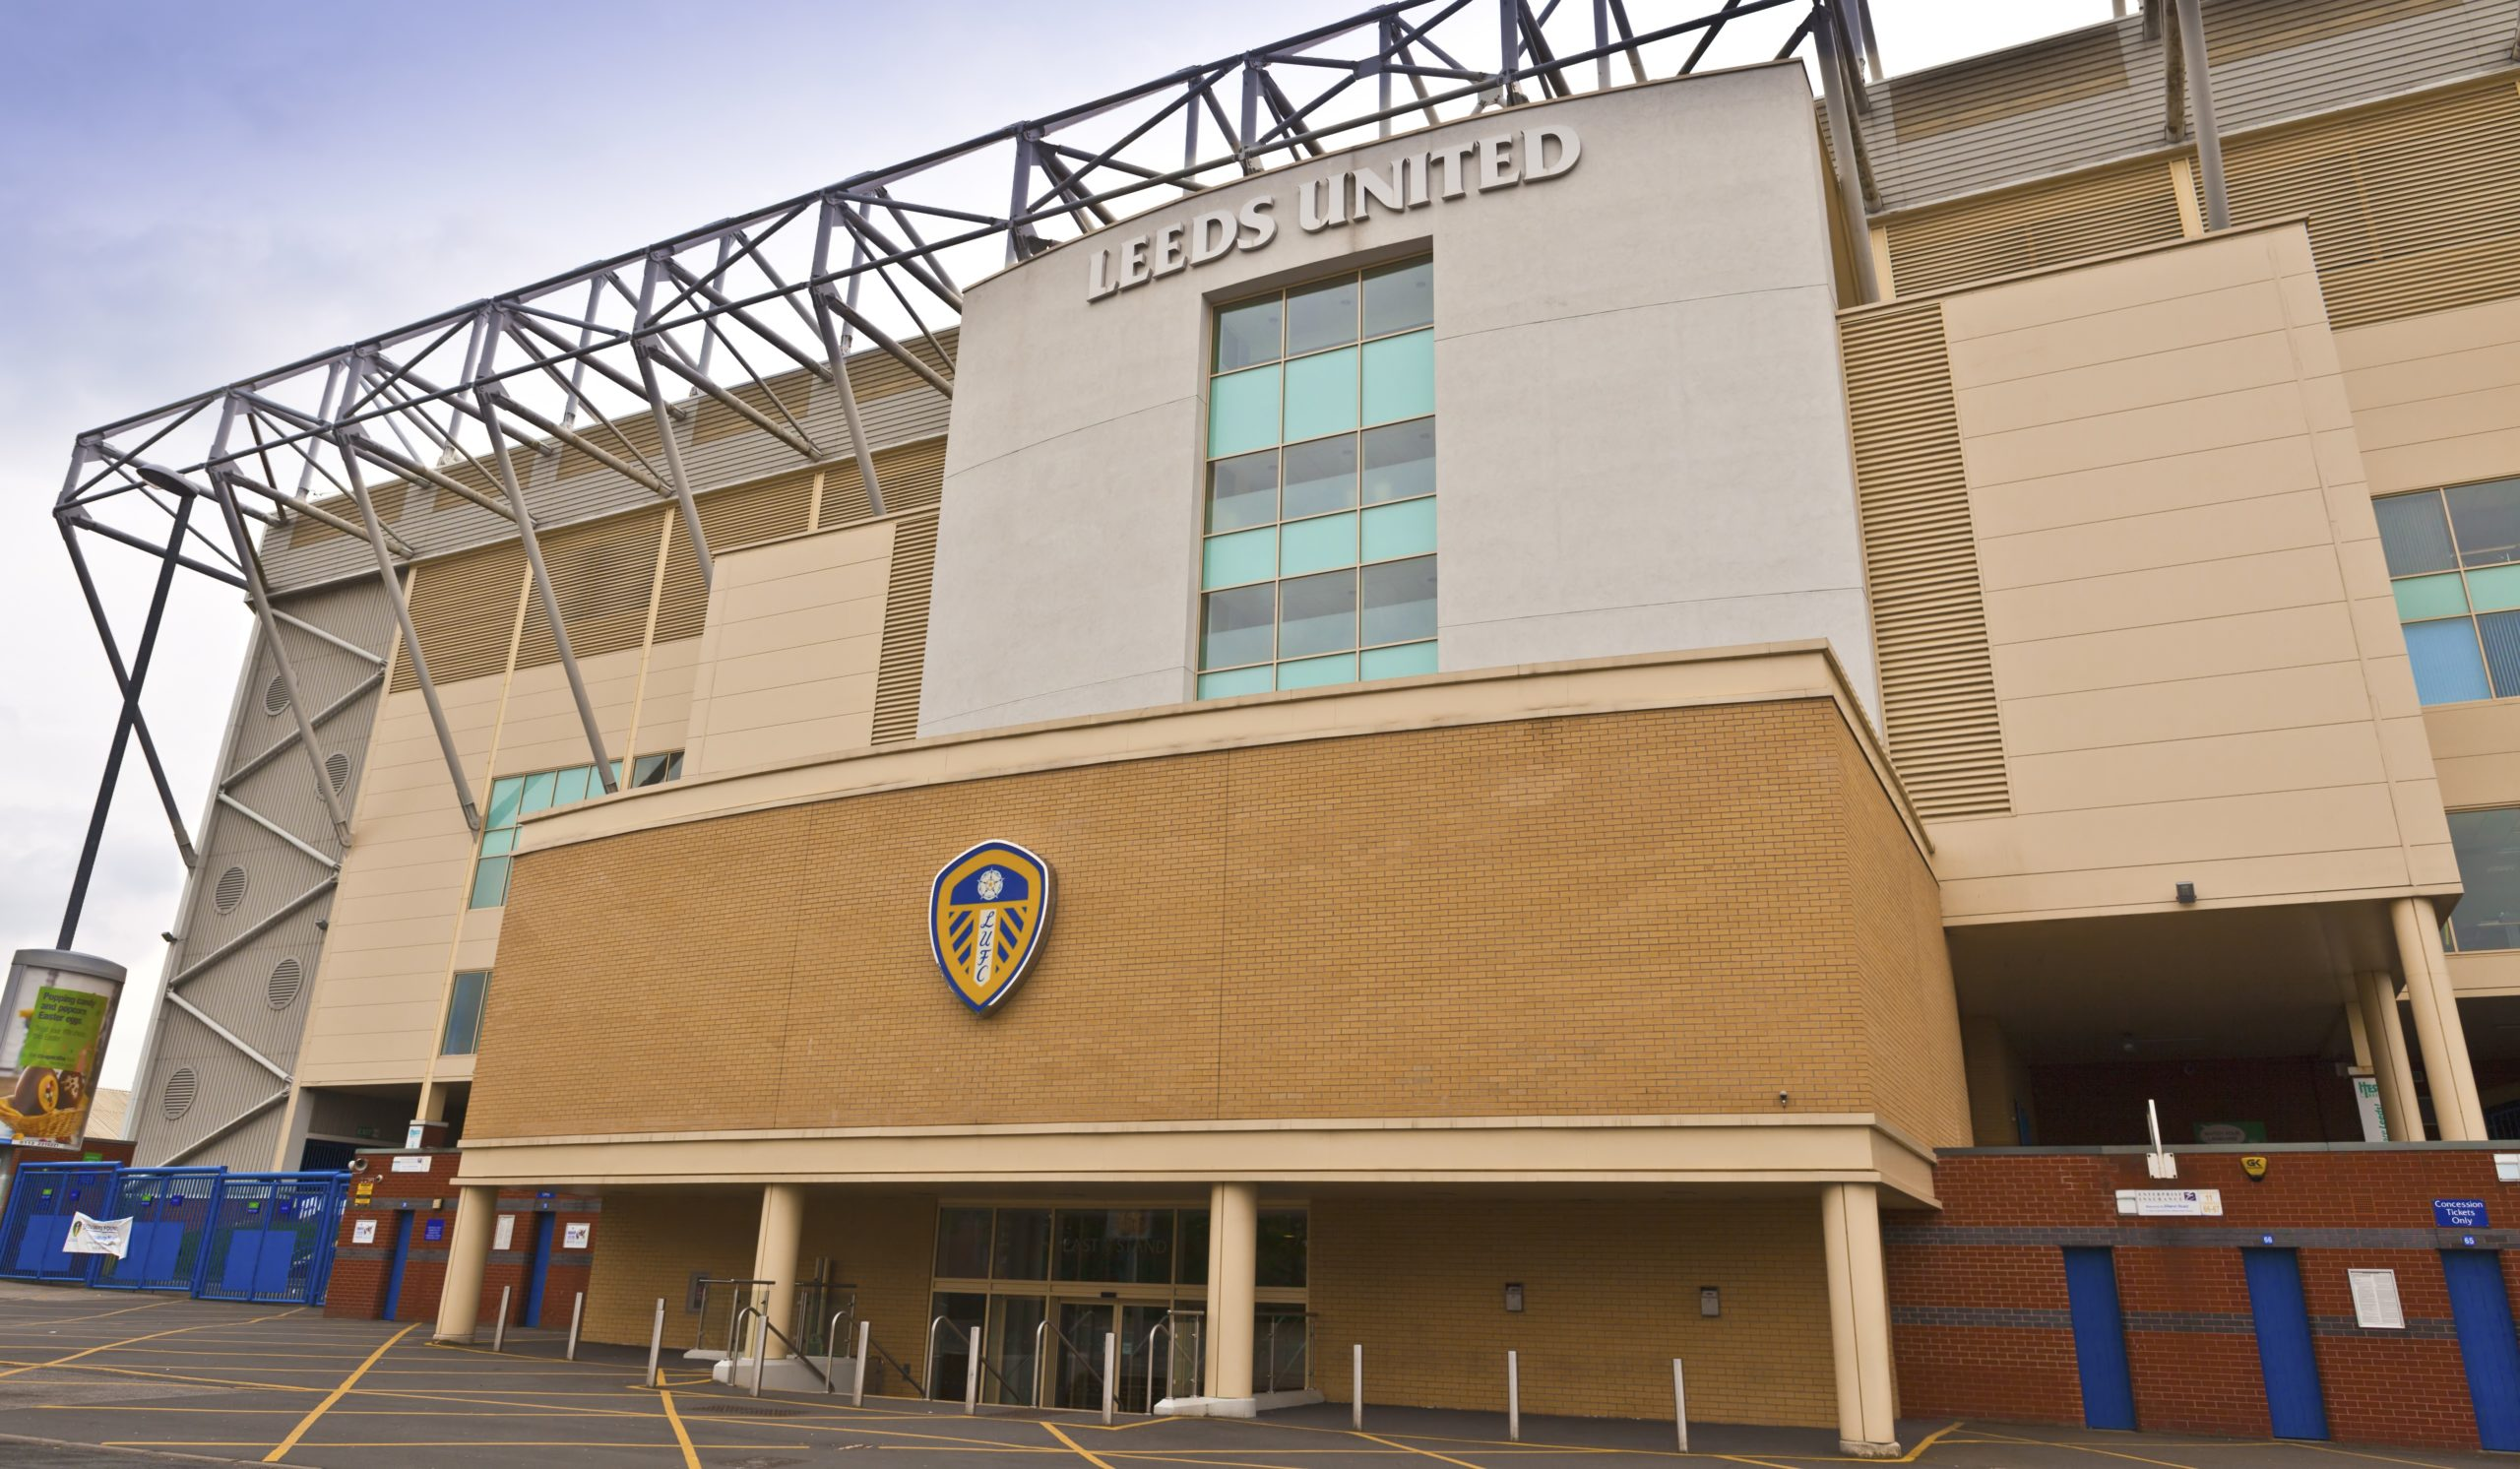 leeds united investissements